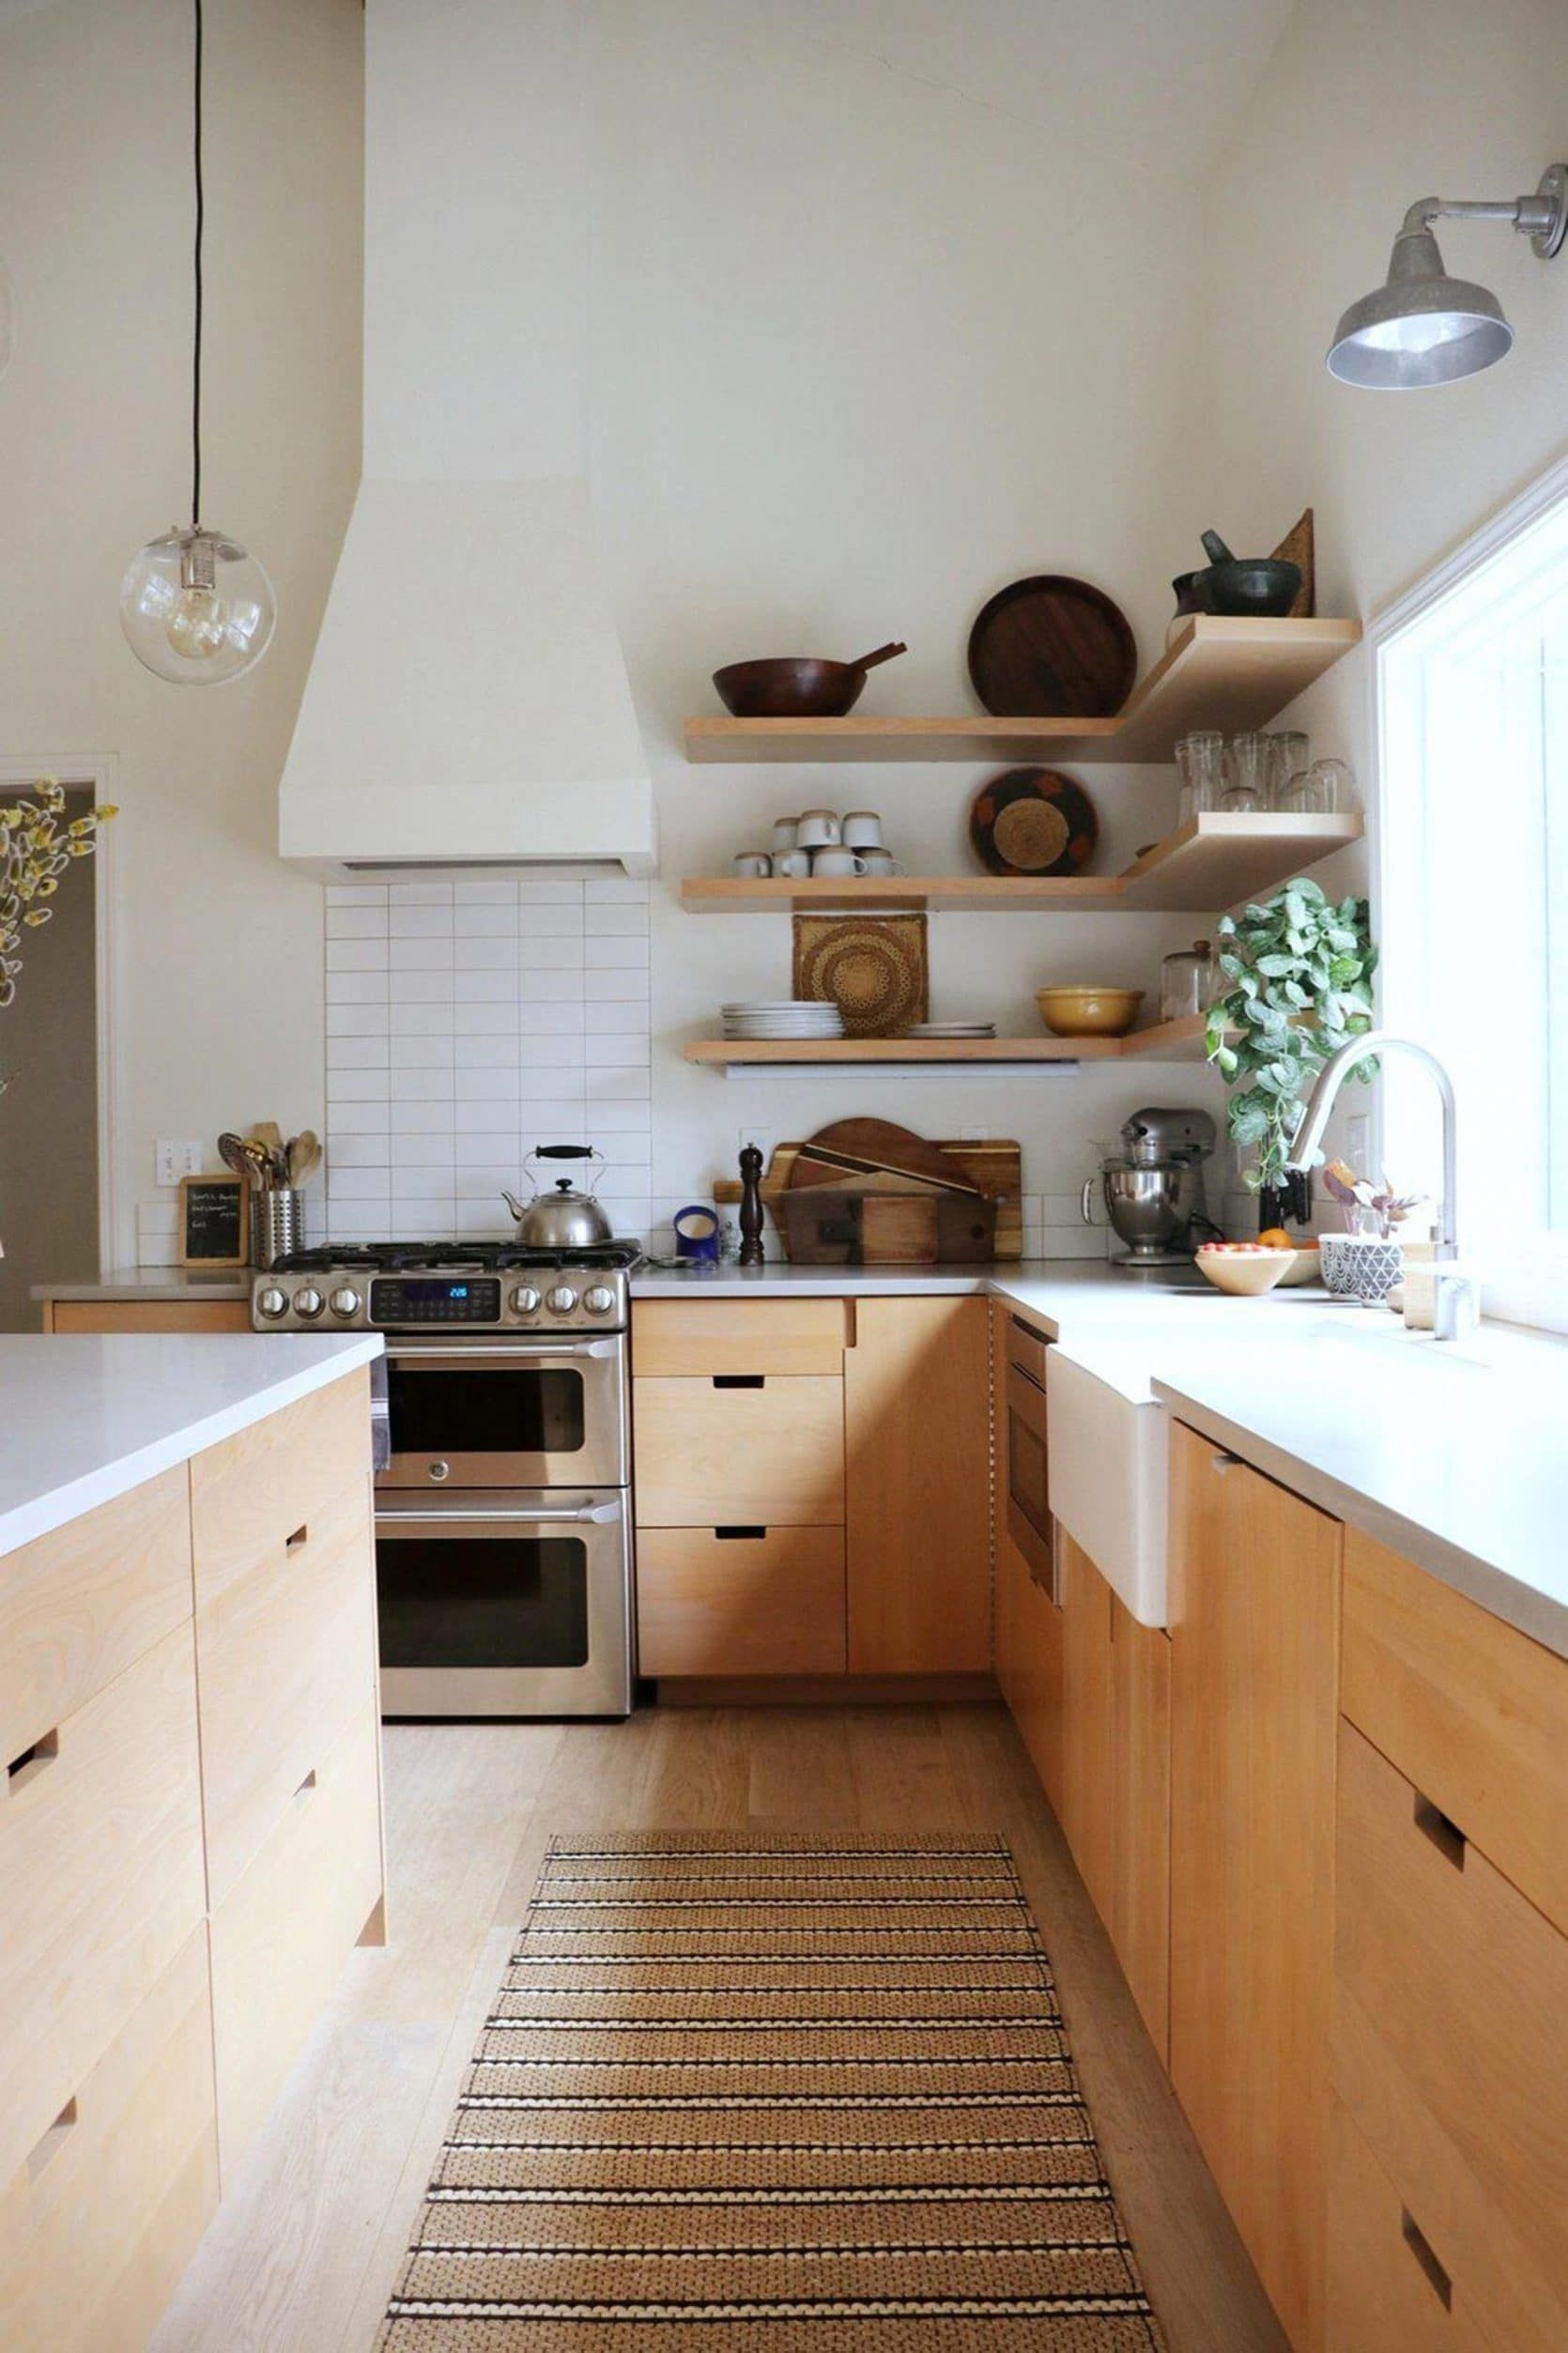 9 Kitchen Trends For 2019 We'Re Betting Will Be Huge  Emily Henderson